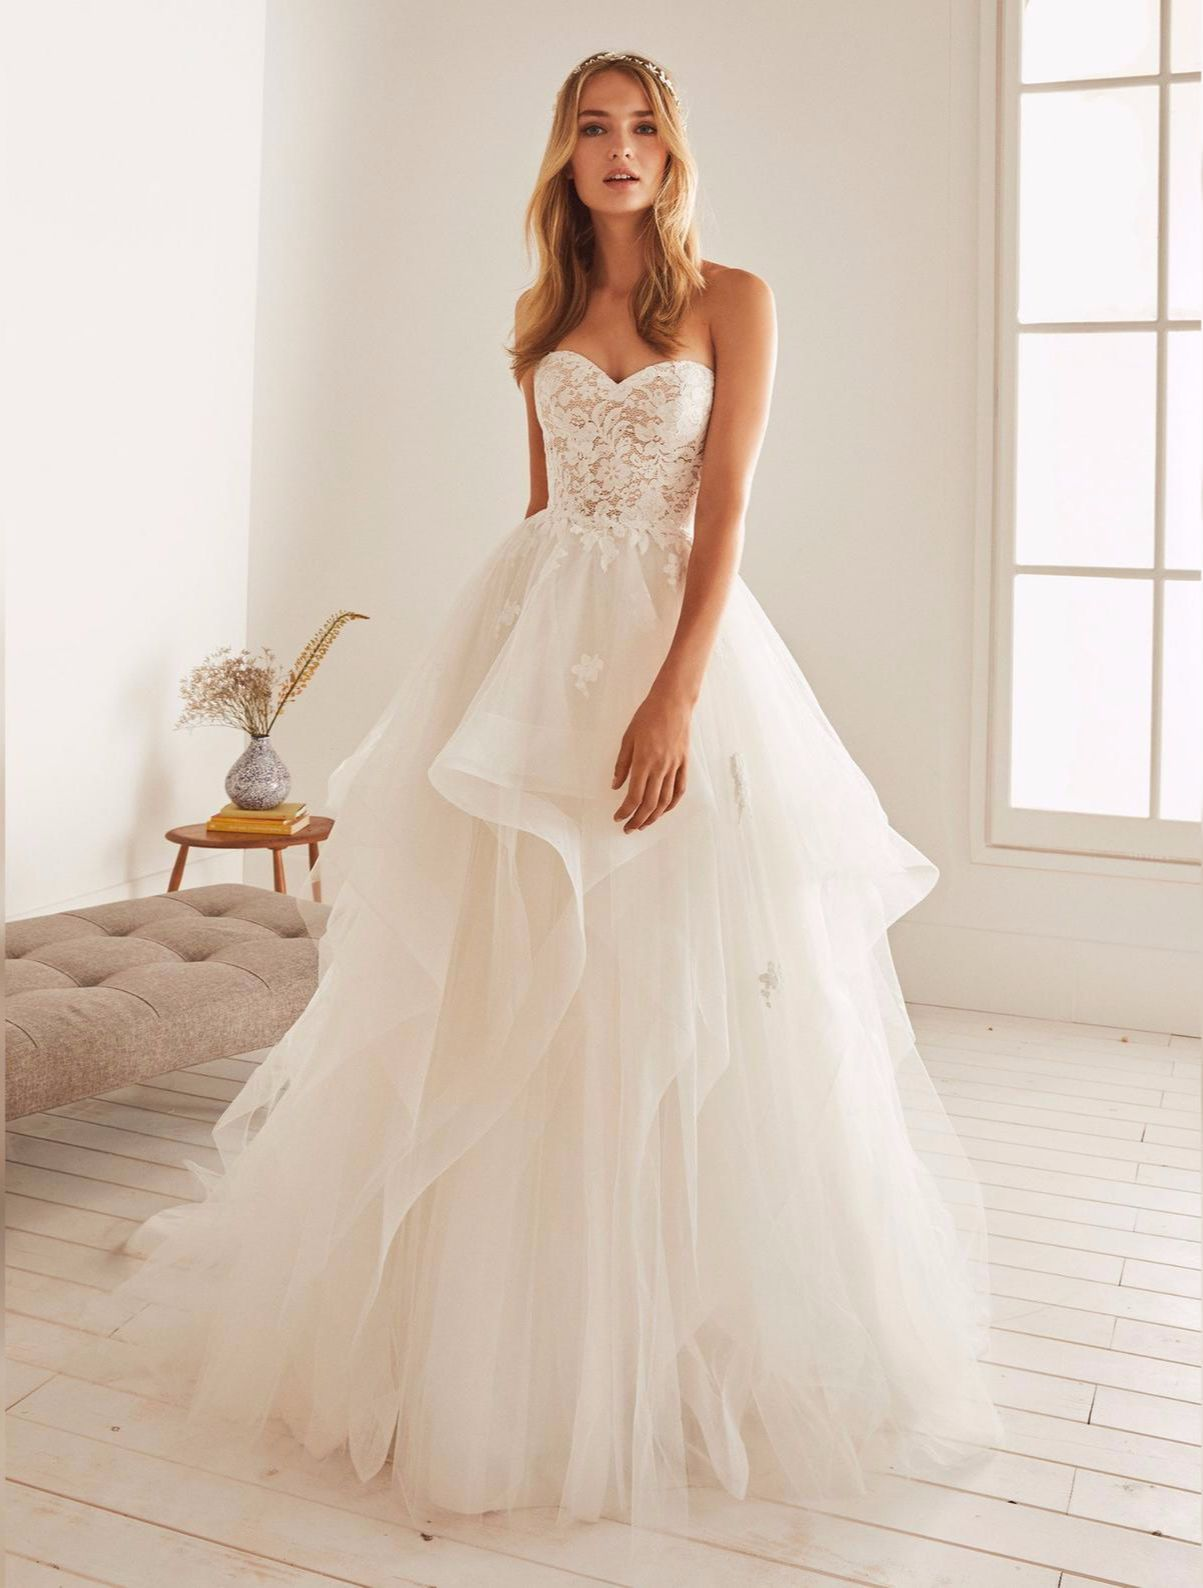 15 Wedding Dresses Under 1000 Dollars In 2020 Ball Gown Wedding Dress Tulle Wedding Dress Wedding Dresses